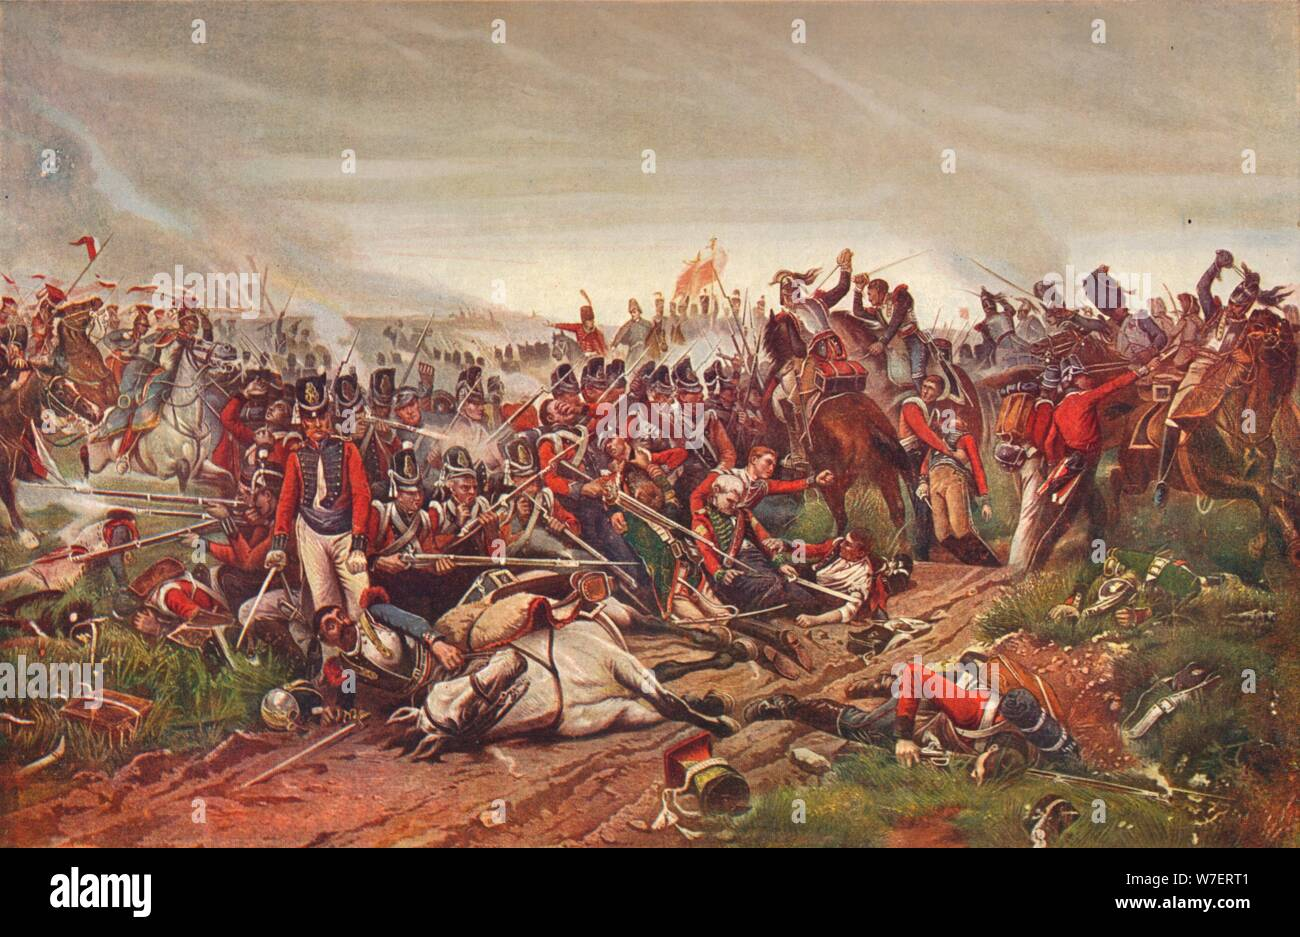 French cuirassiers charging a British infantry square at the Battle of Waterloo, 1815 (1906). Artist: P Jazet. Stock Photo